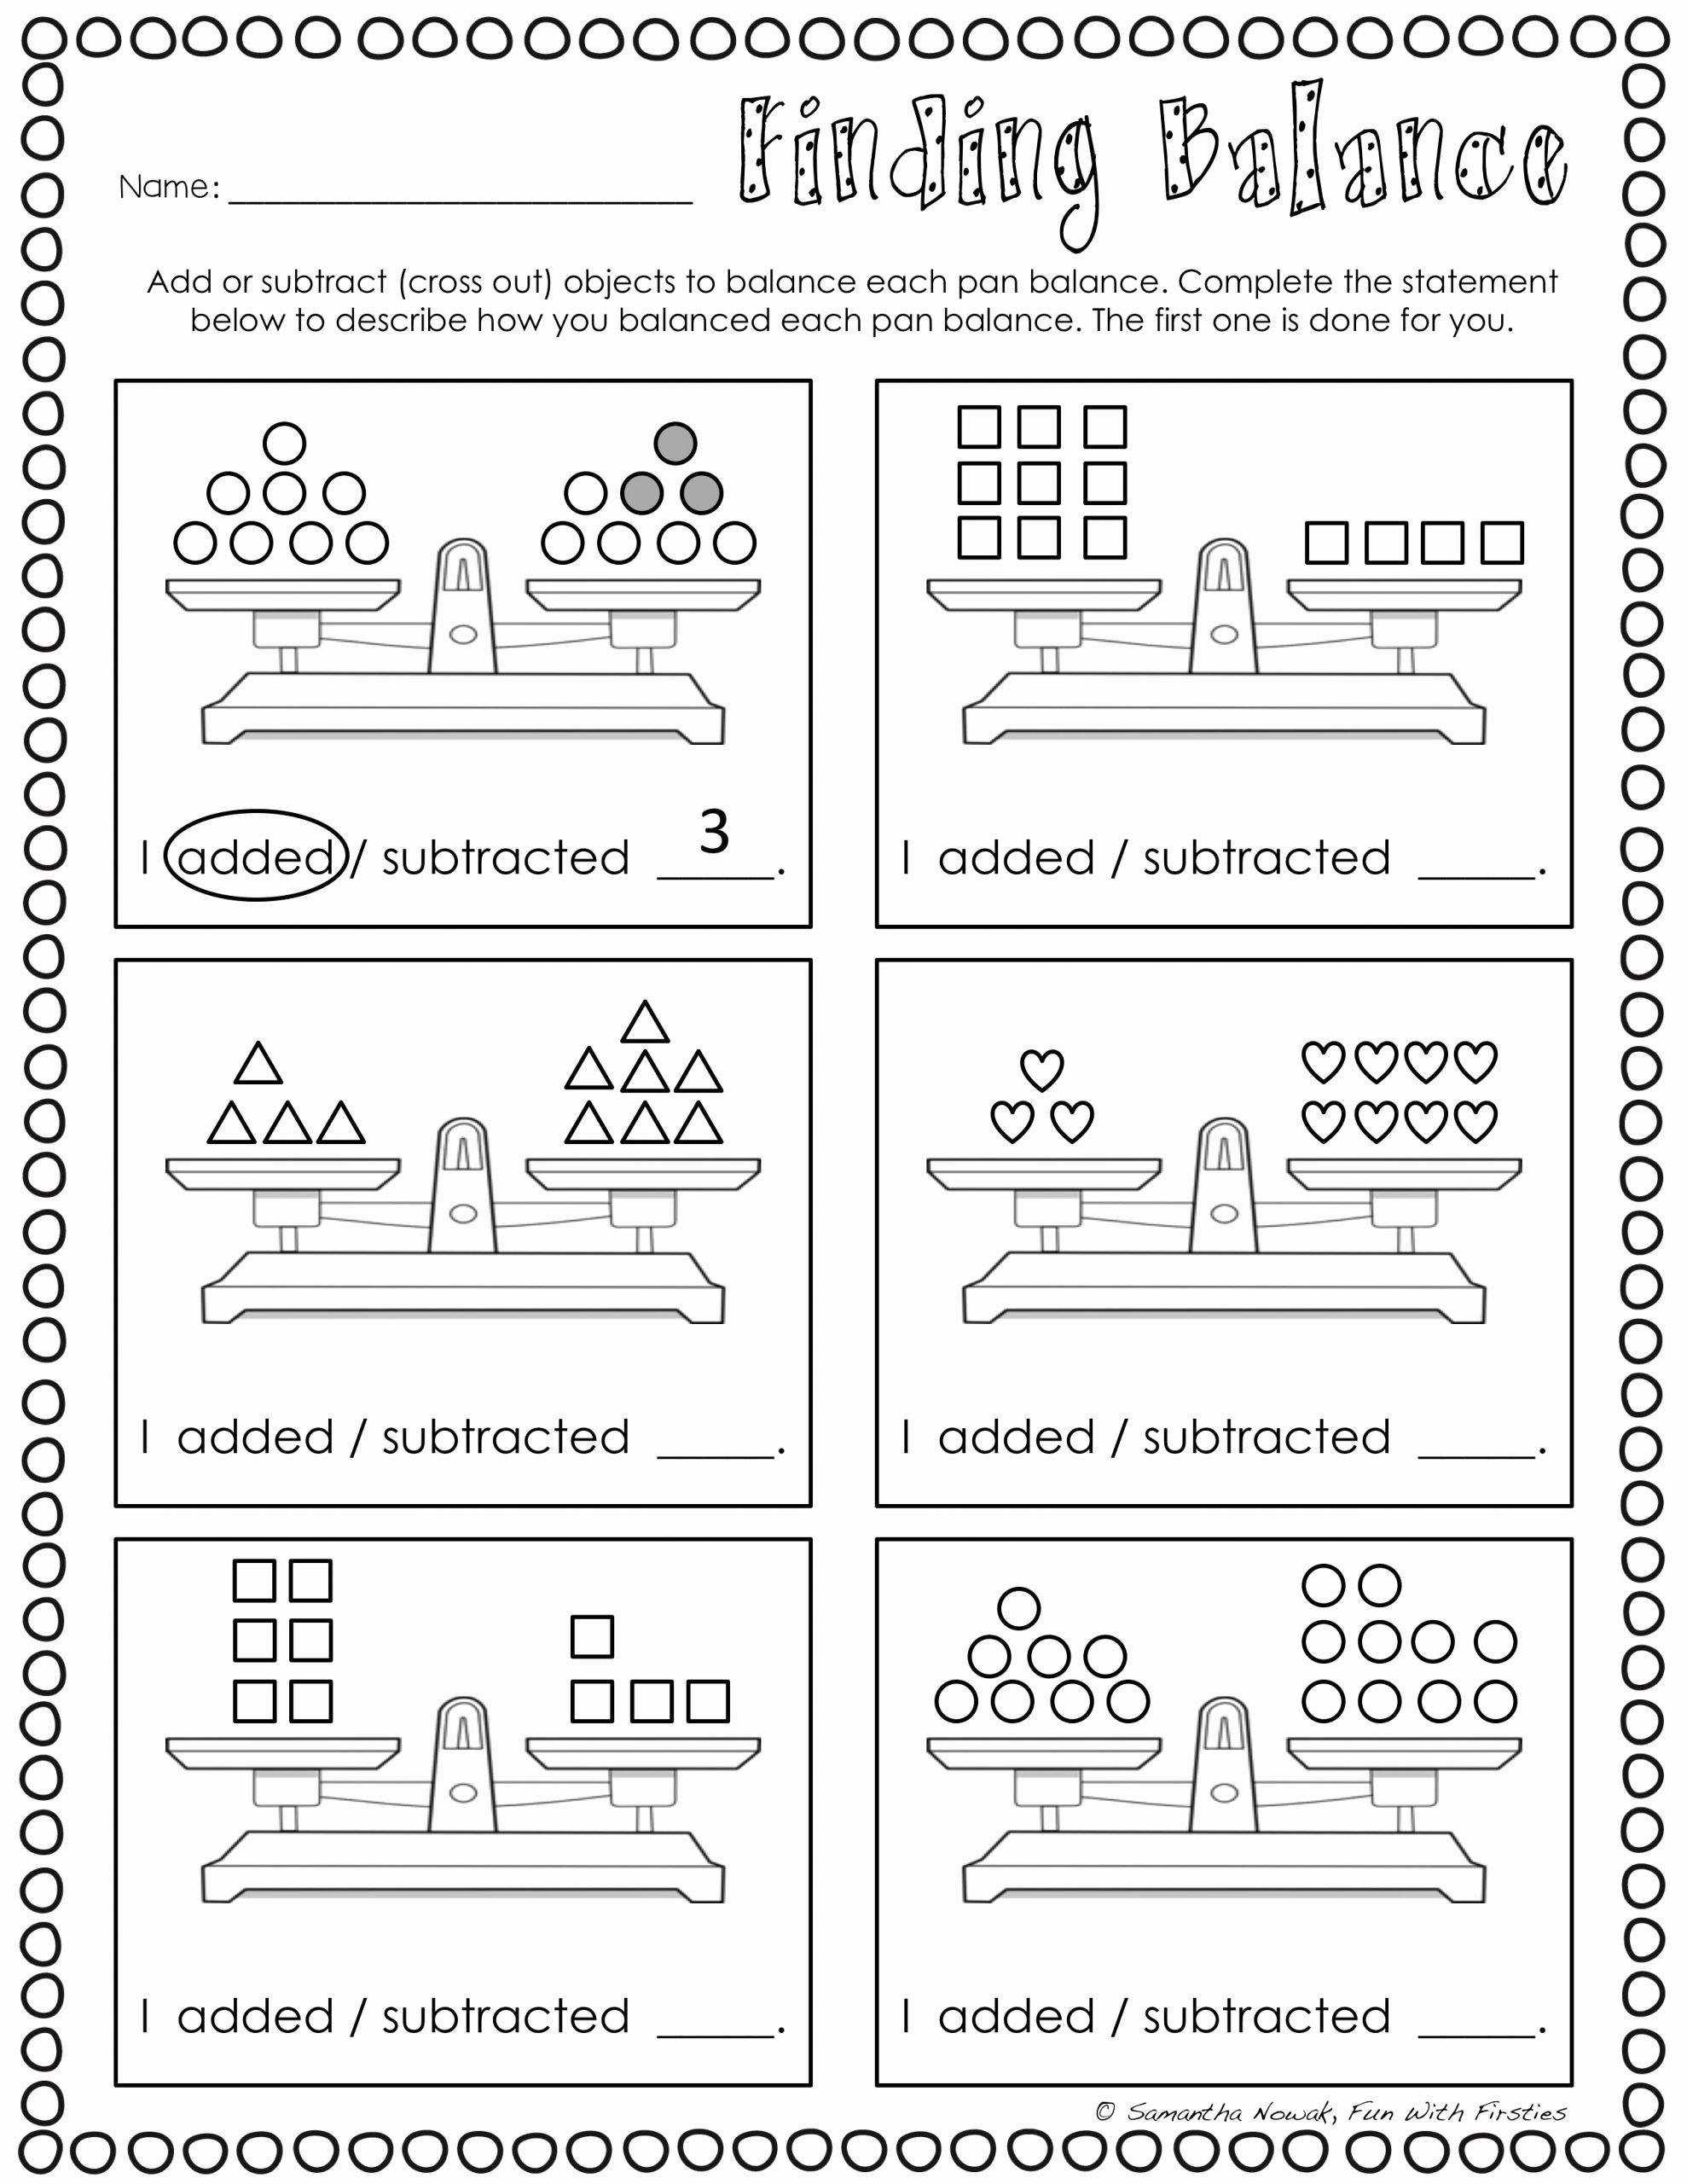 Energy Worksheets for 2nd Grade Lovely Energy Worksheets for 2nd Grade In 2020